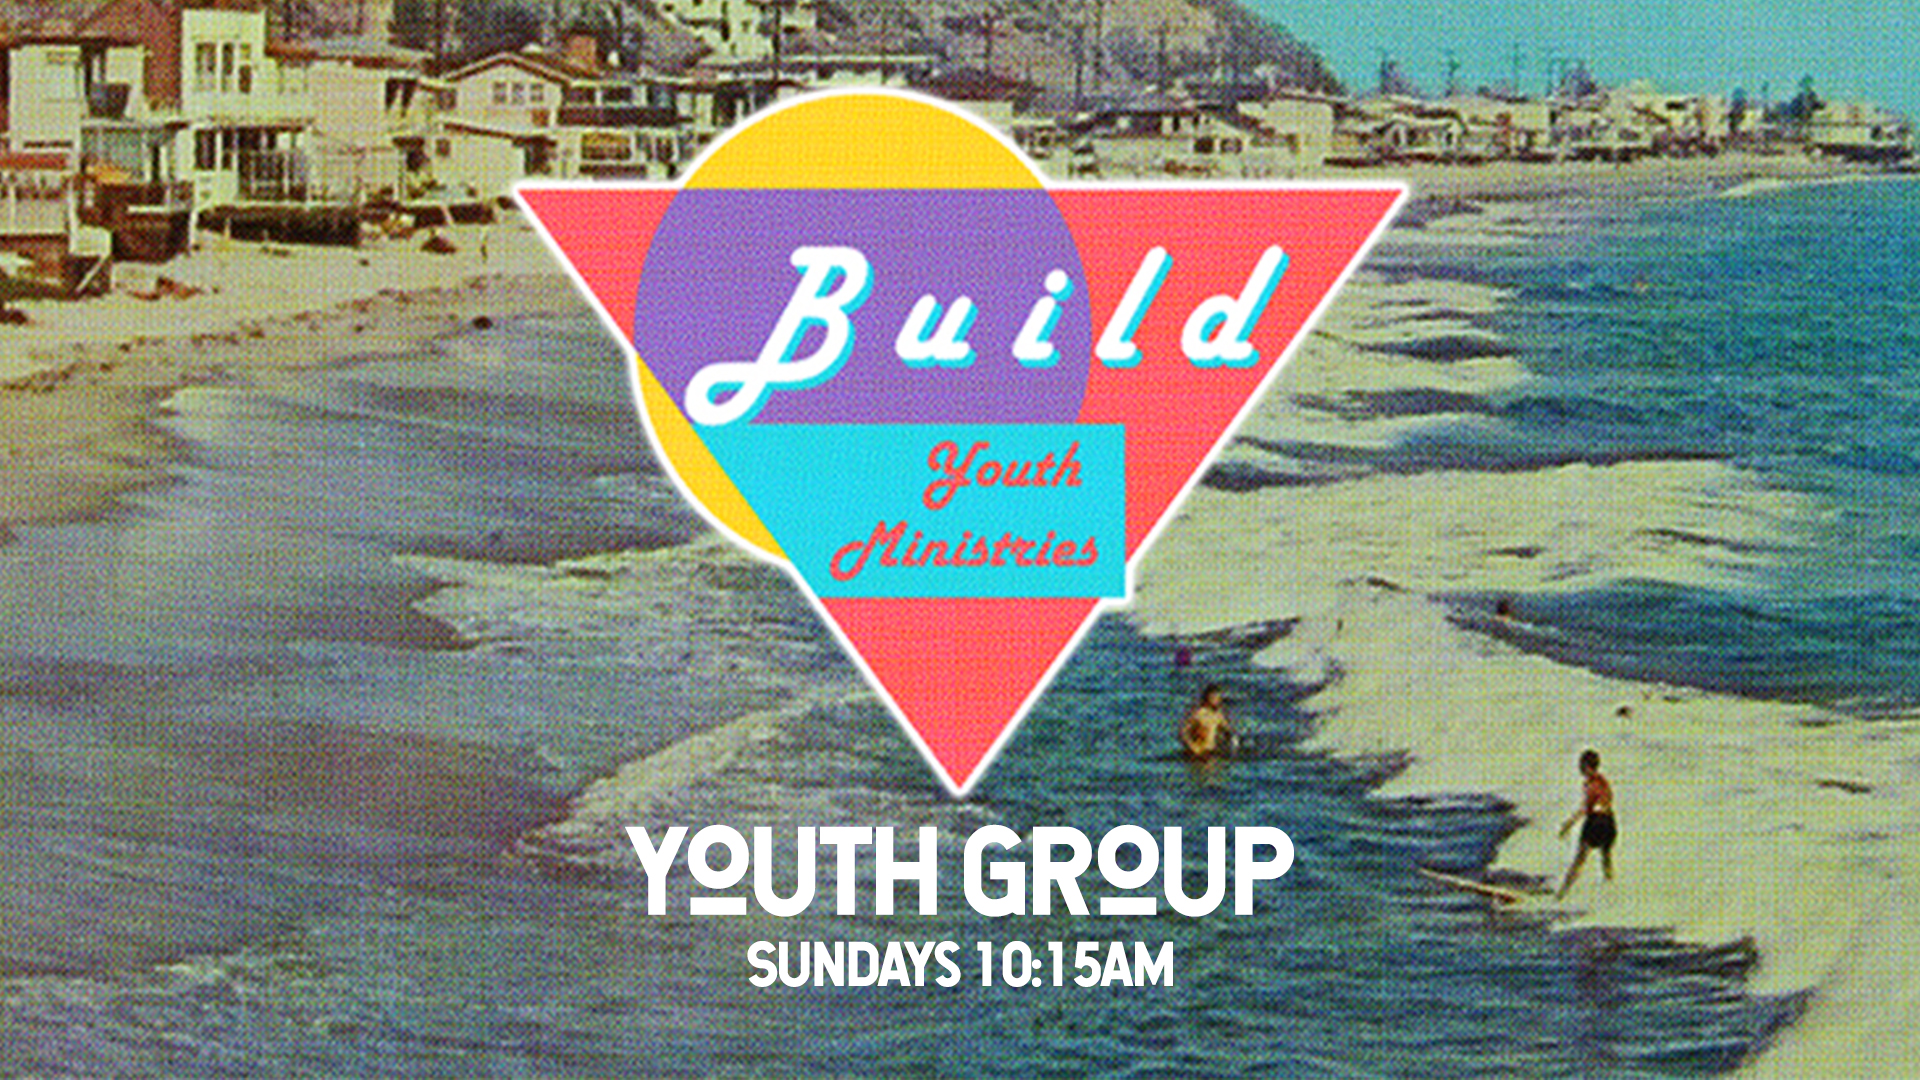 Build youth group sunday logo image